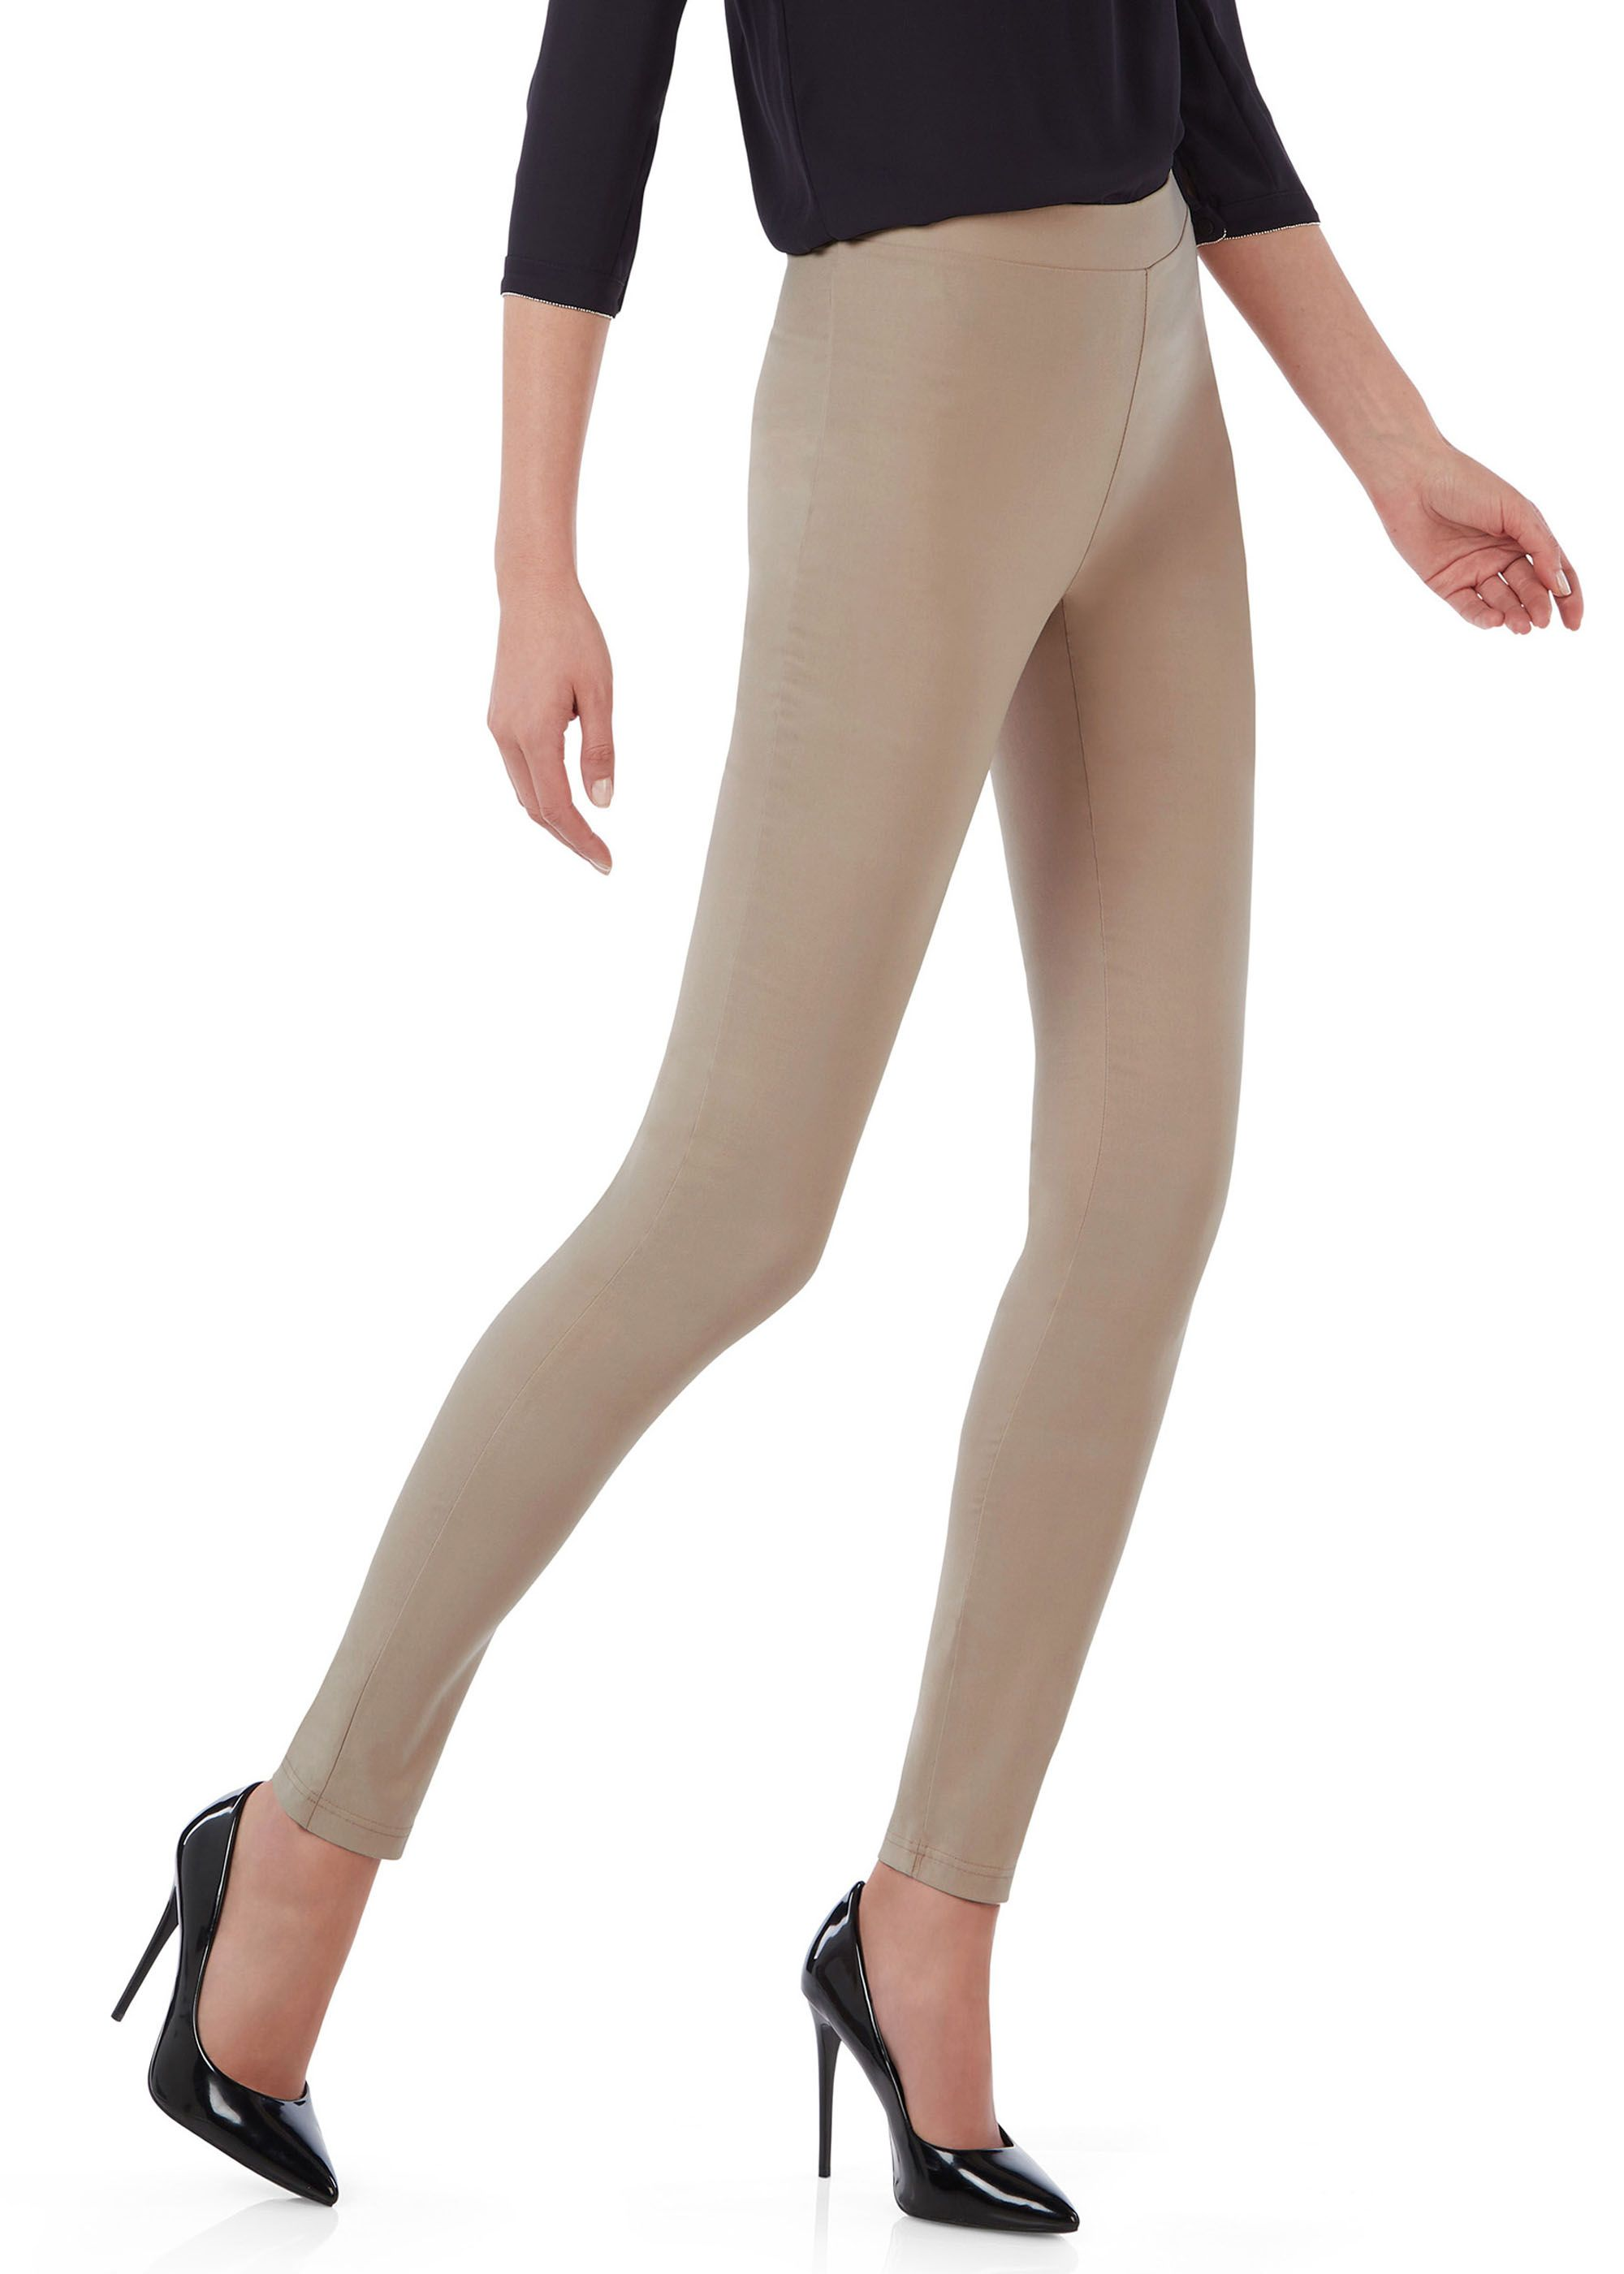 LEGGINGS SIMPLE Philippe Matignon